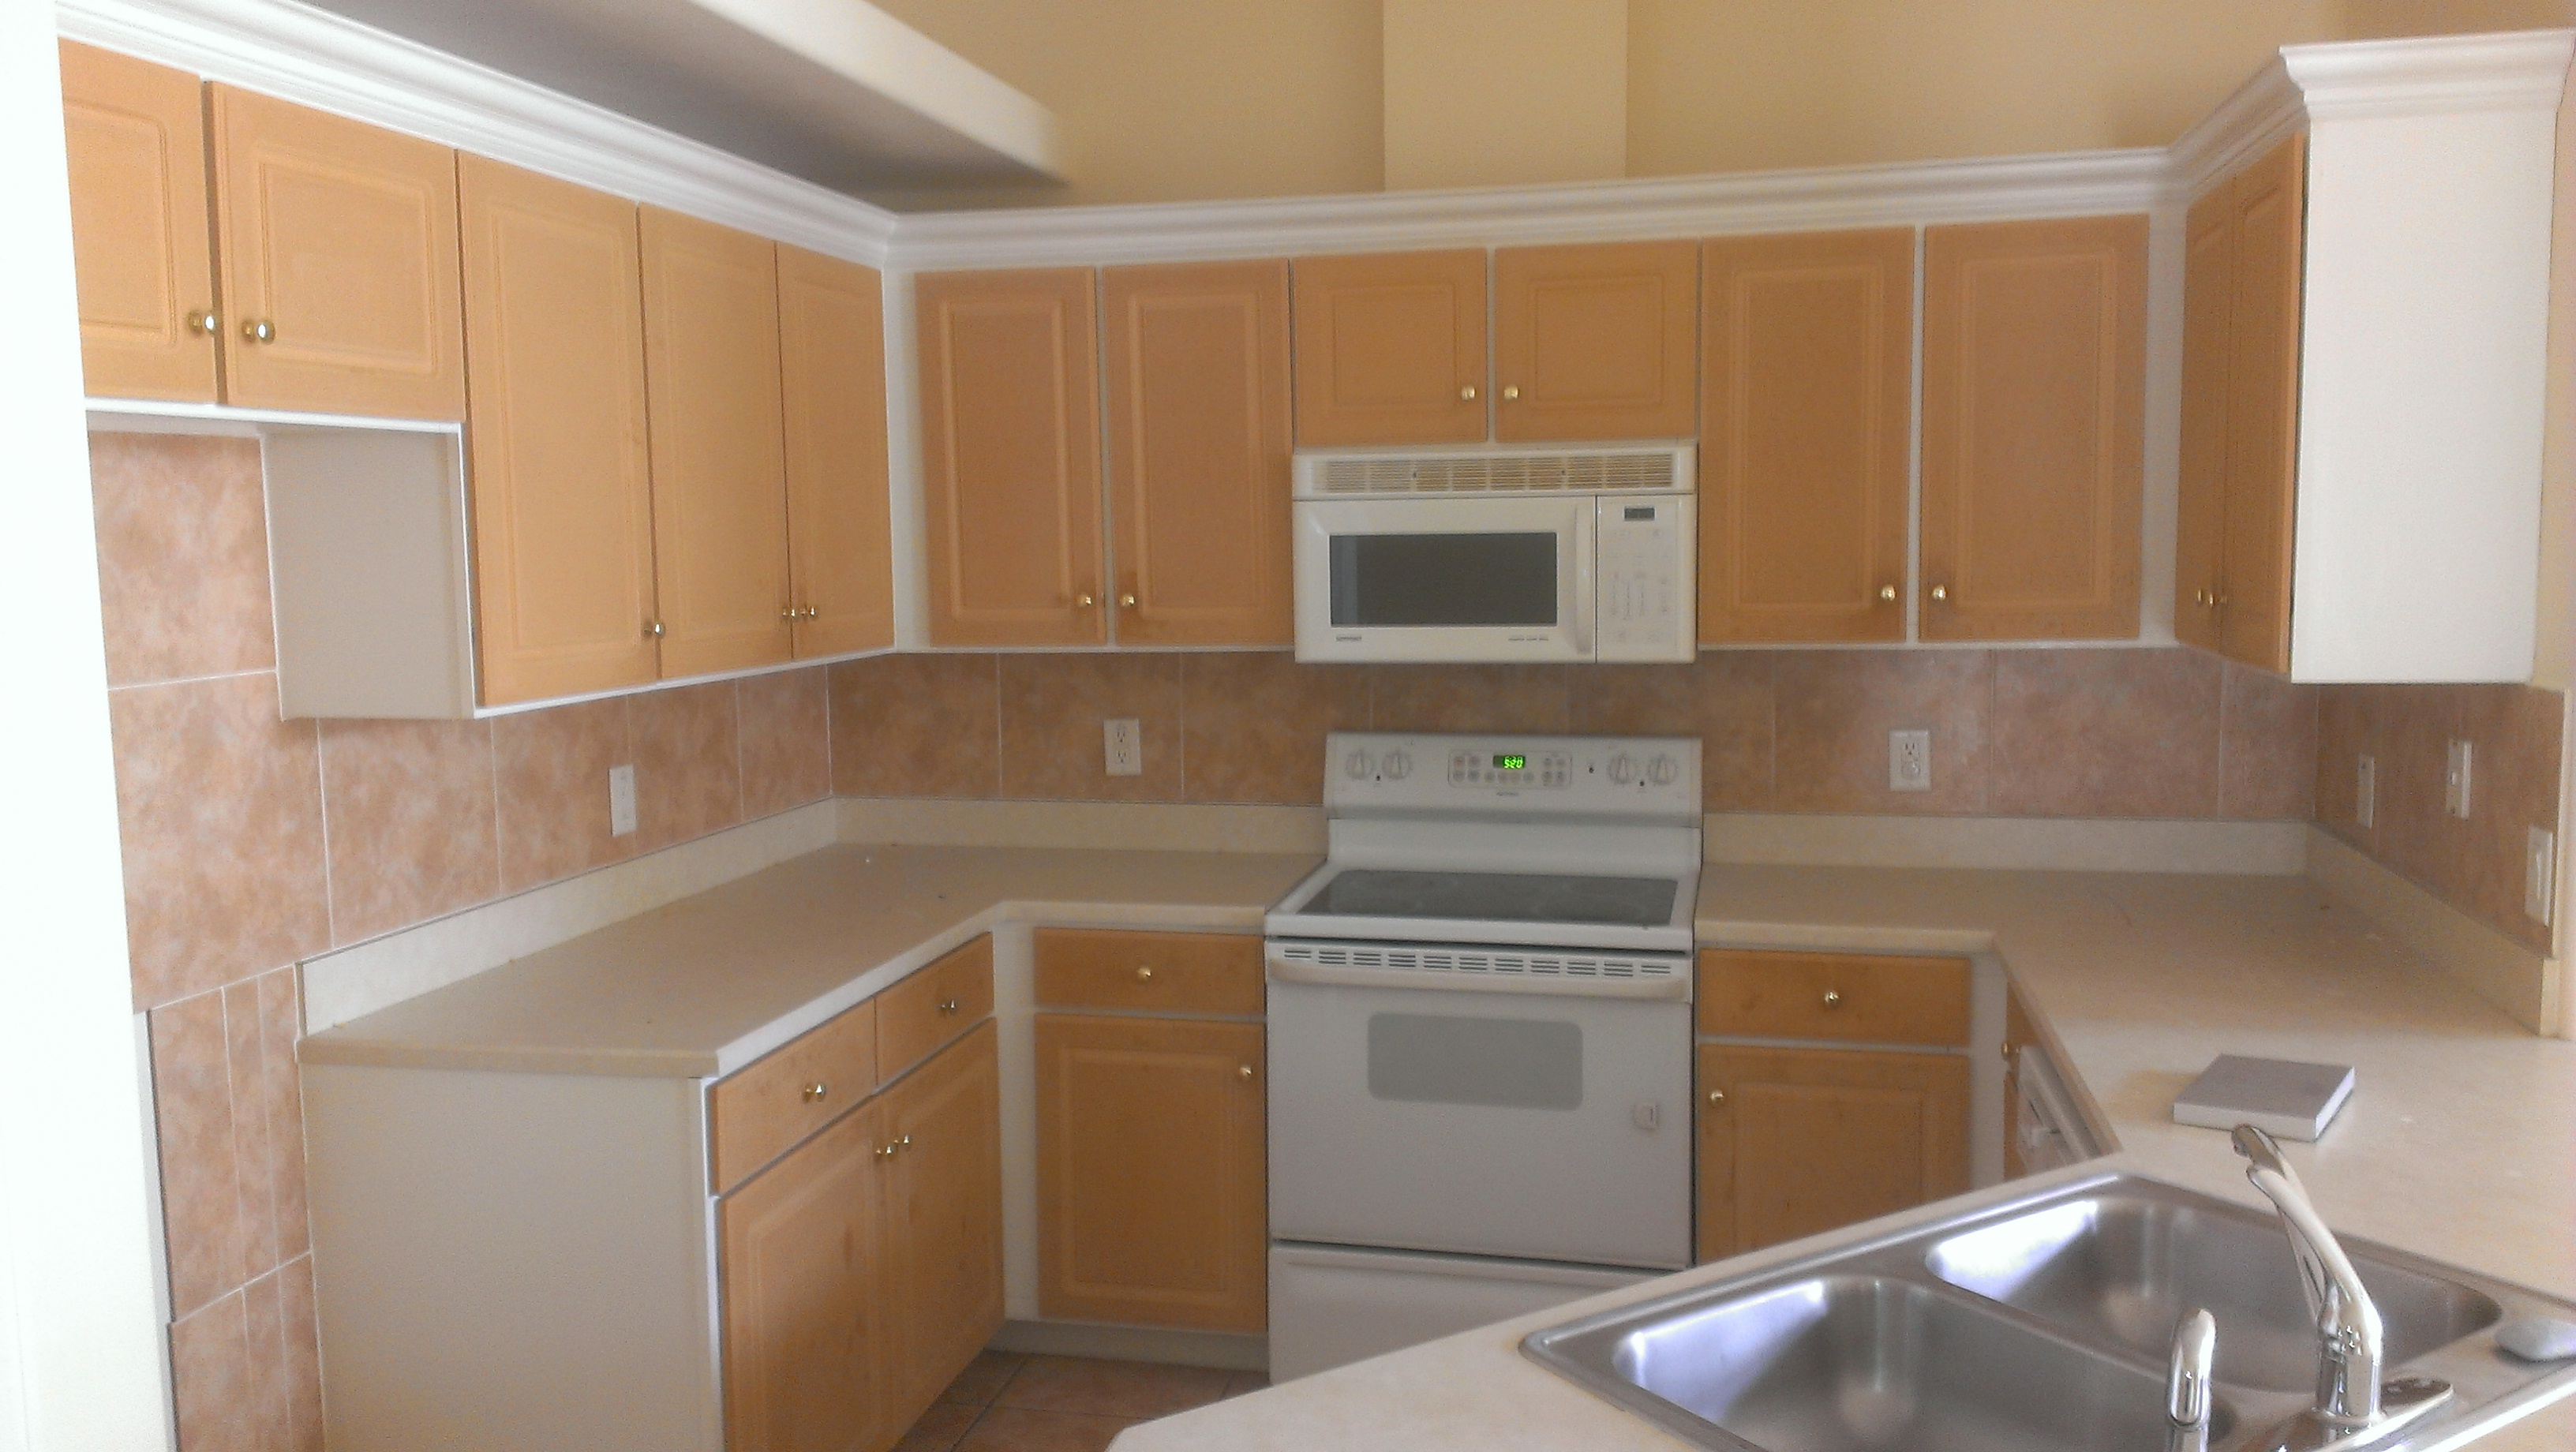 how to make your kitchen cabinets look new again old kitchen cabinets Making Old Kitchen Cabinets Look New Again